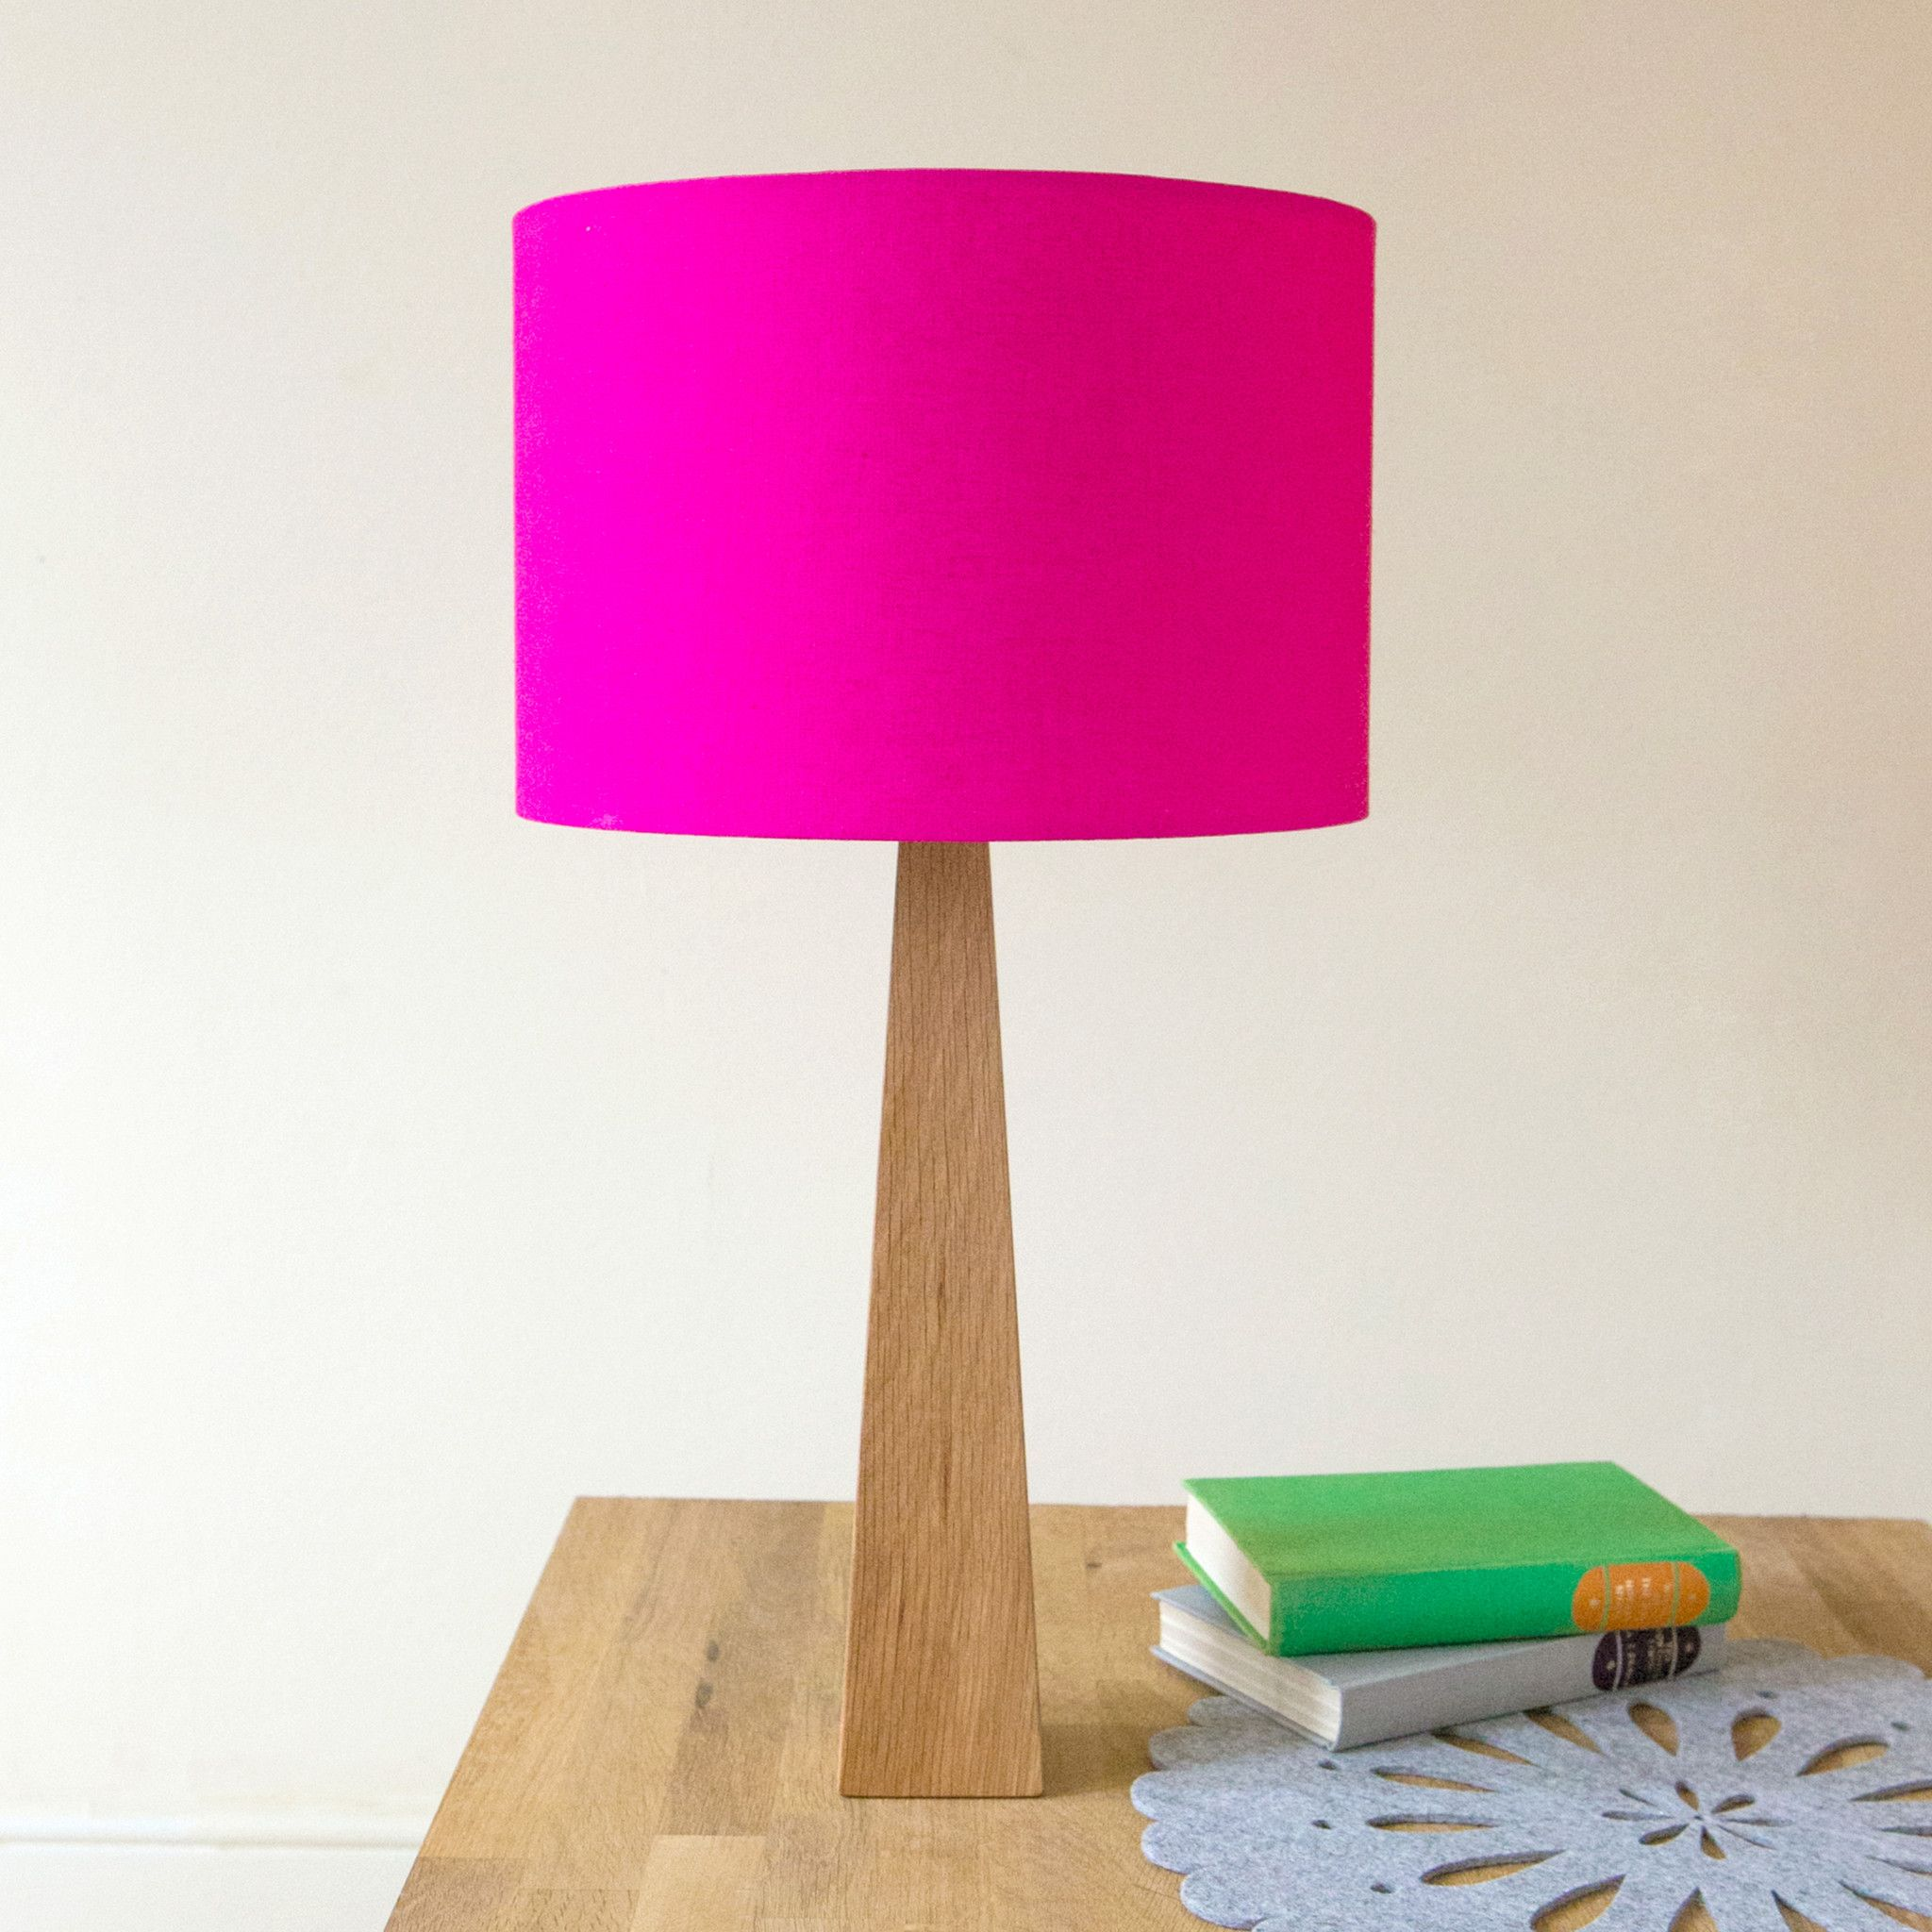 Hot Pink Table Lamp Pink Table Lamp Wooden Table Lamps Pink Lamp